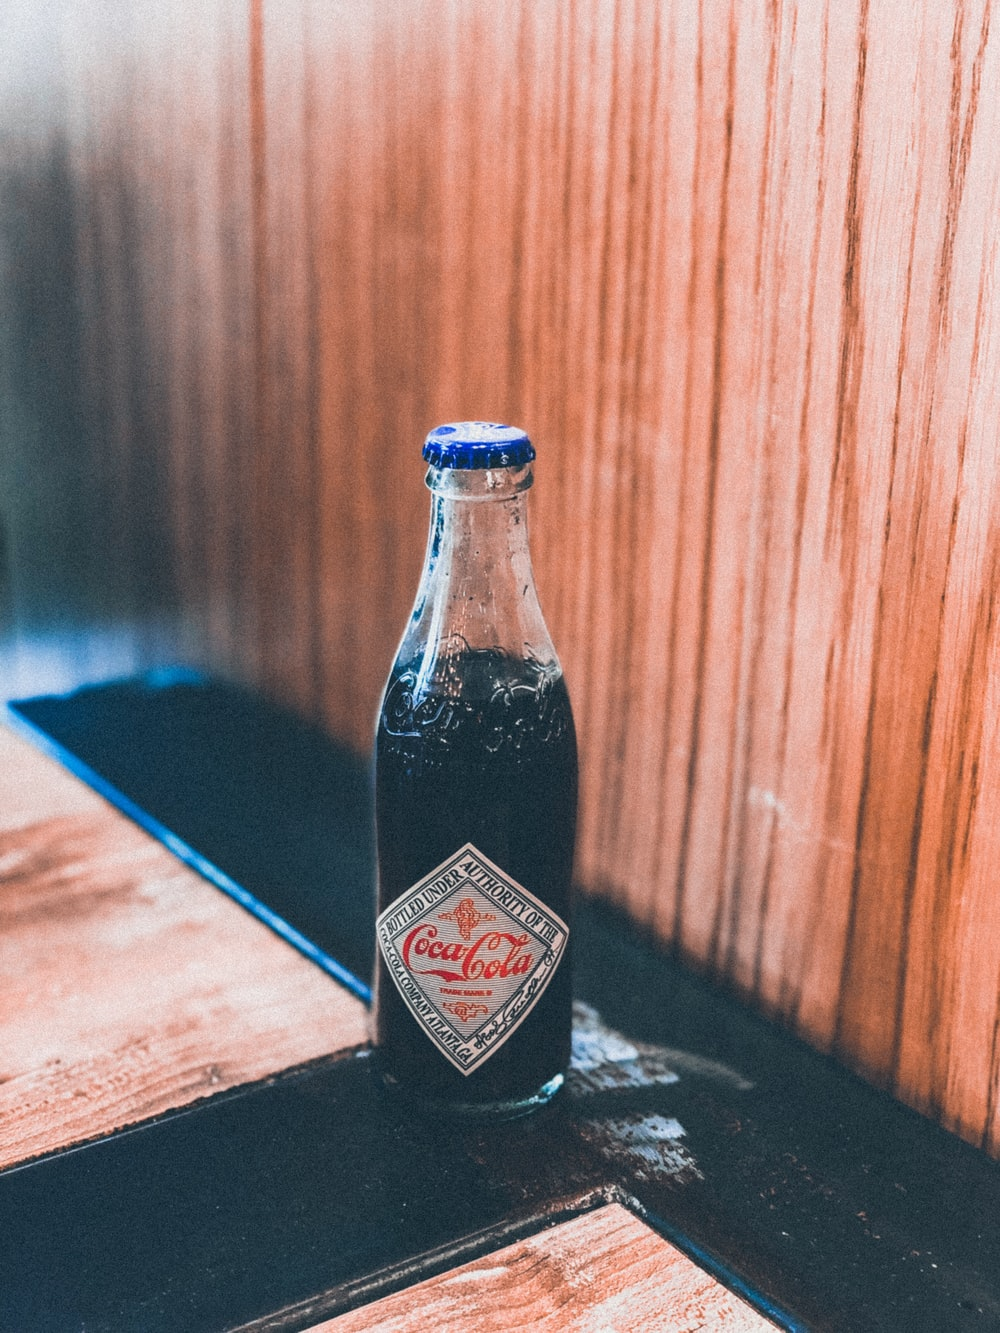 Coca-Cola bottle on brown and black surface